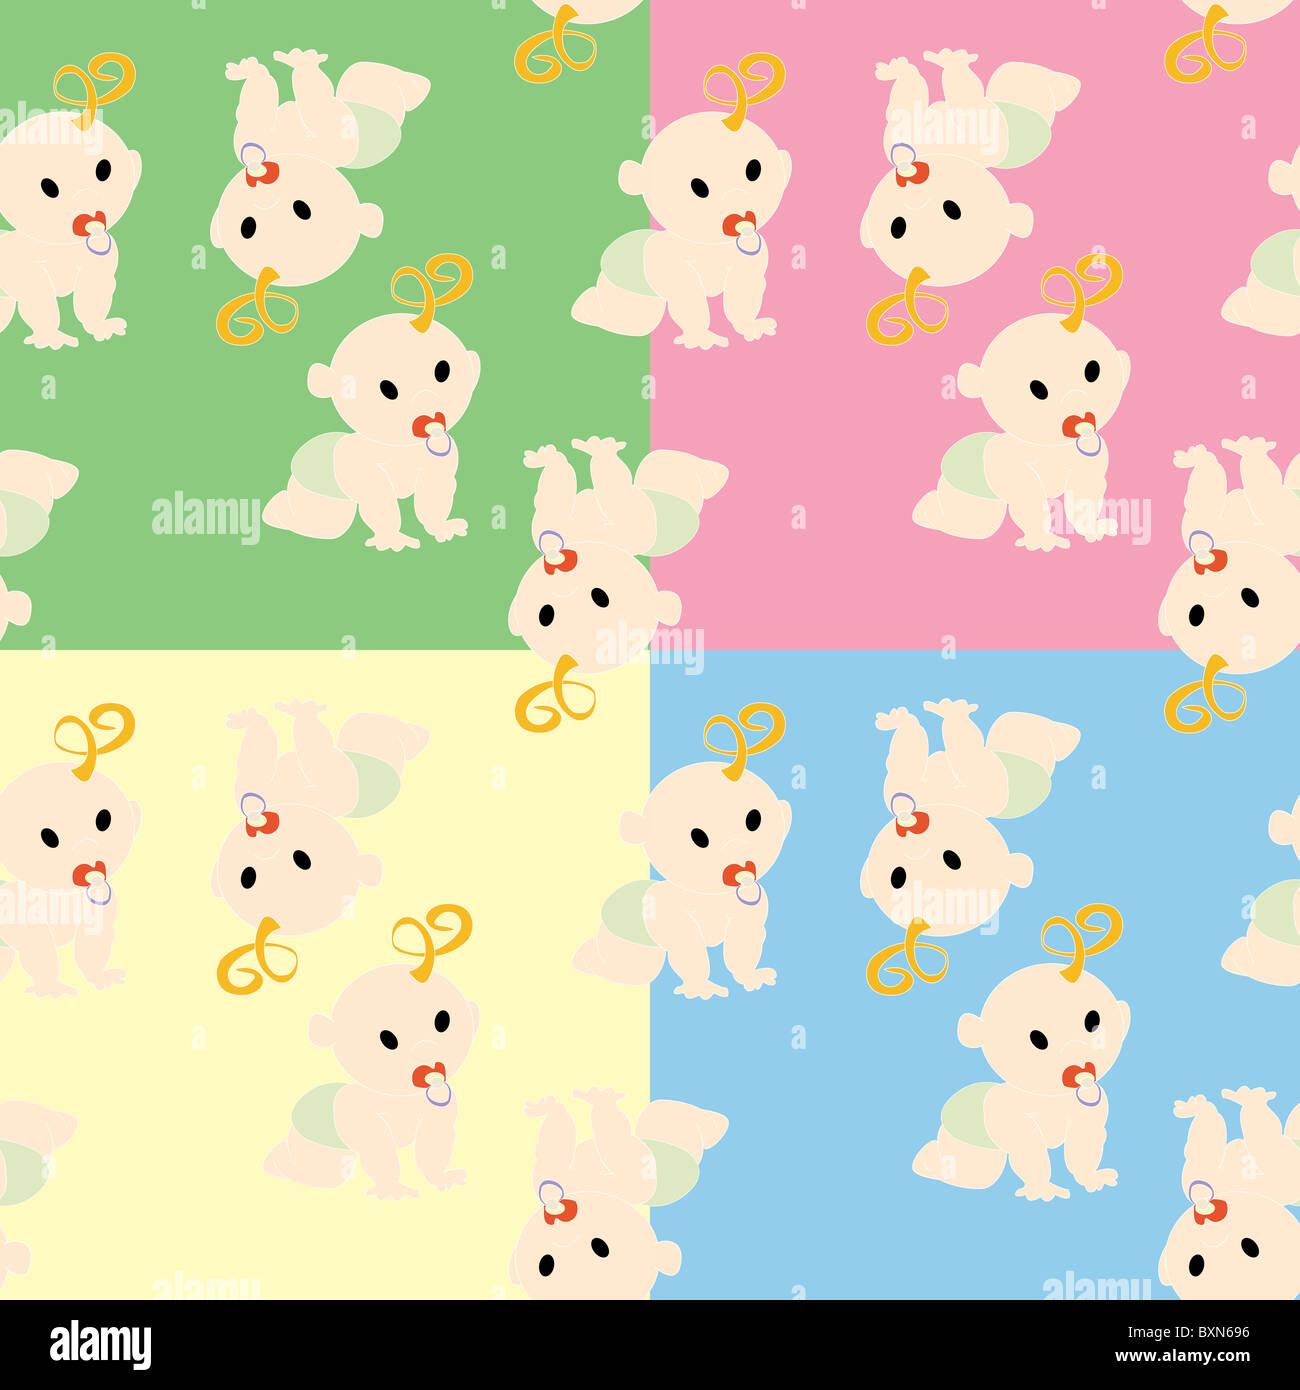 Pattern with babies - Stock Image